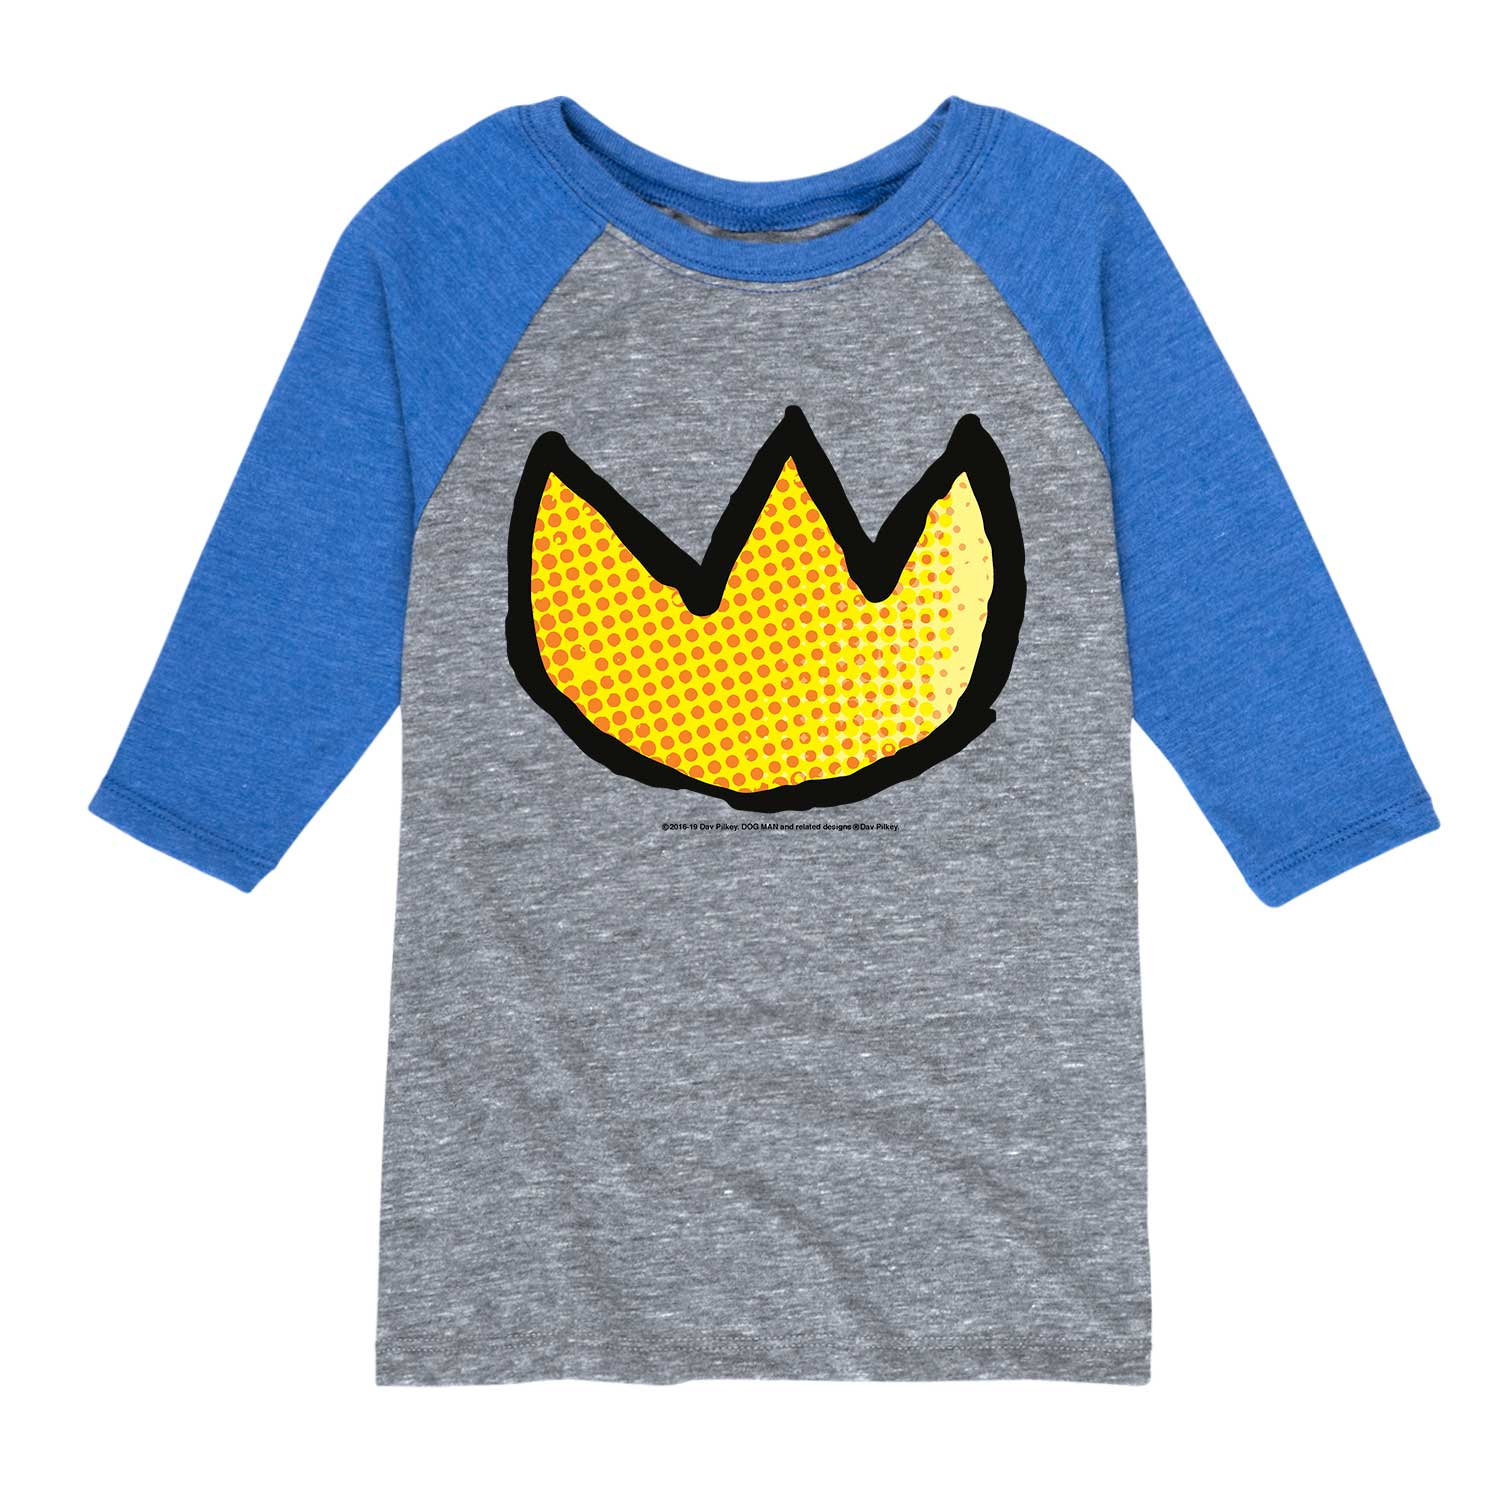 Dog Man - Medallion - Toddler Raglan